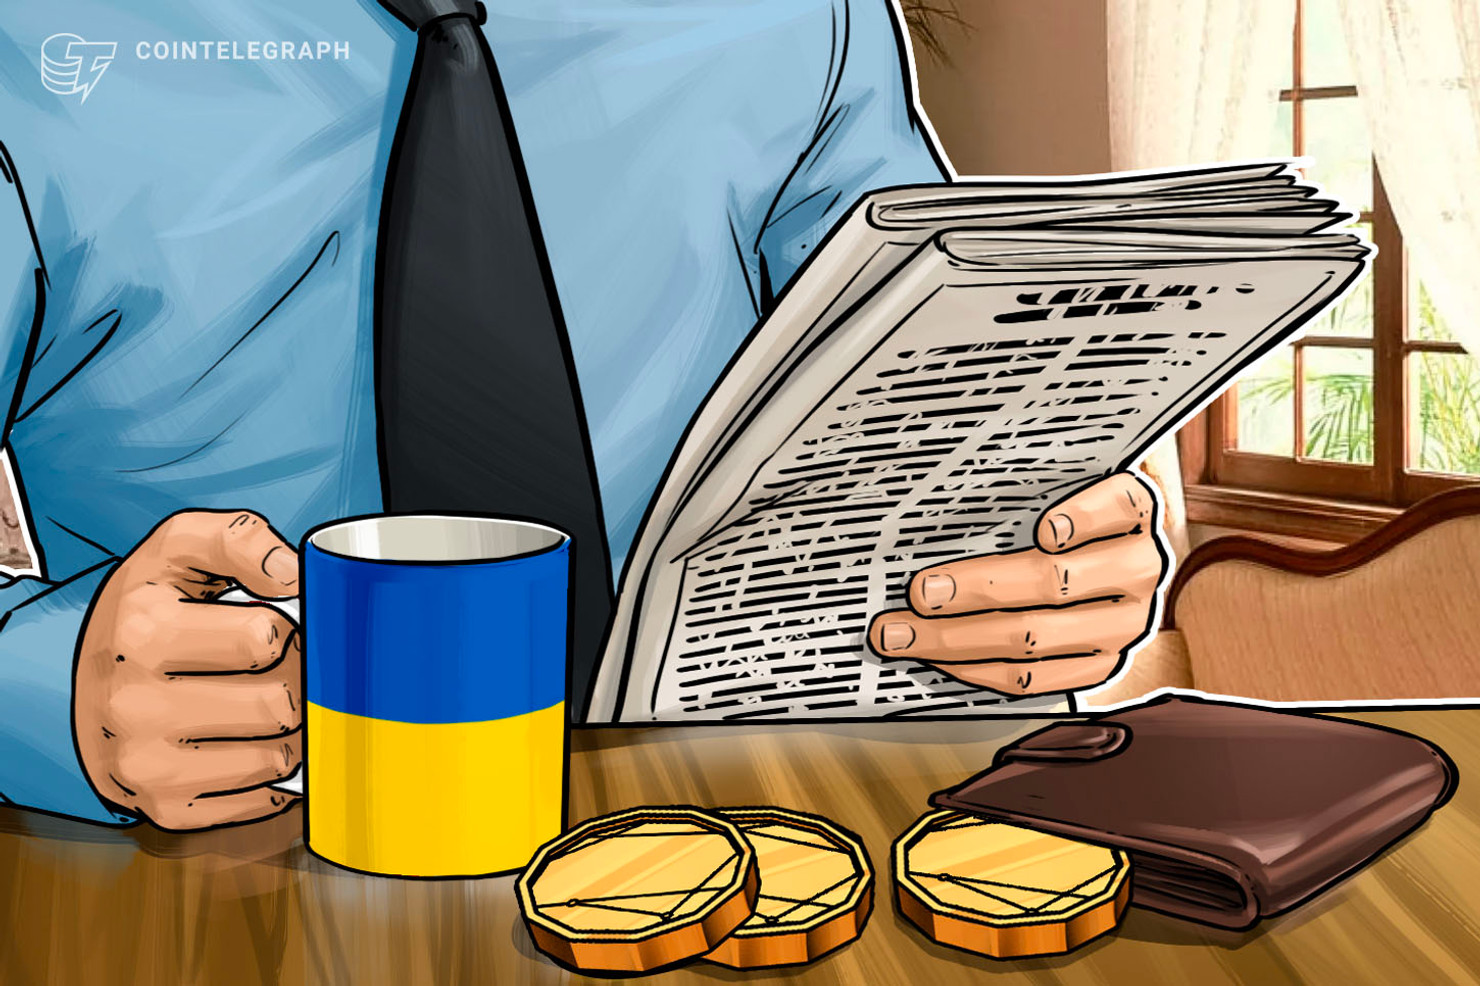 Ukraine to Block Crypto Wallets for Illicit Funds, Finance Minister Says